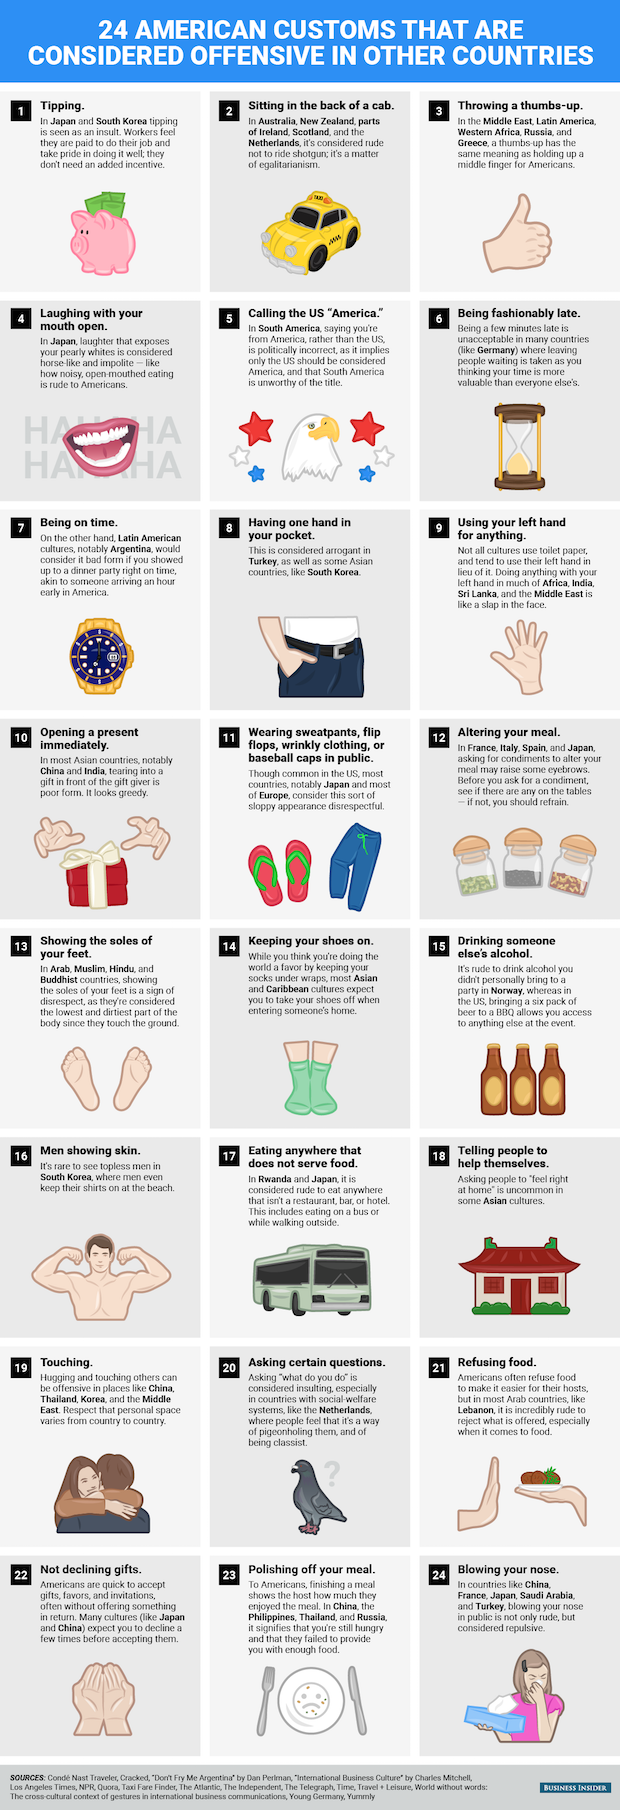 24 American Behaviors Considered Rude in Other Countries | Nerds